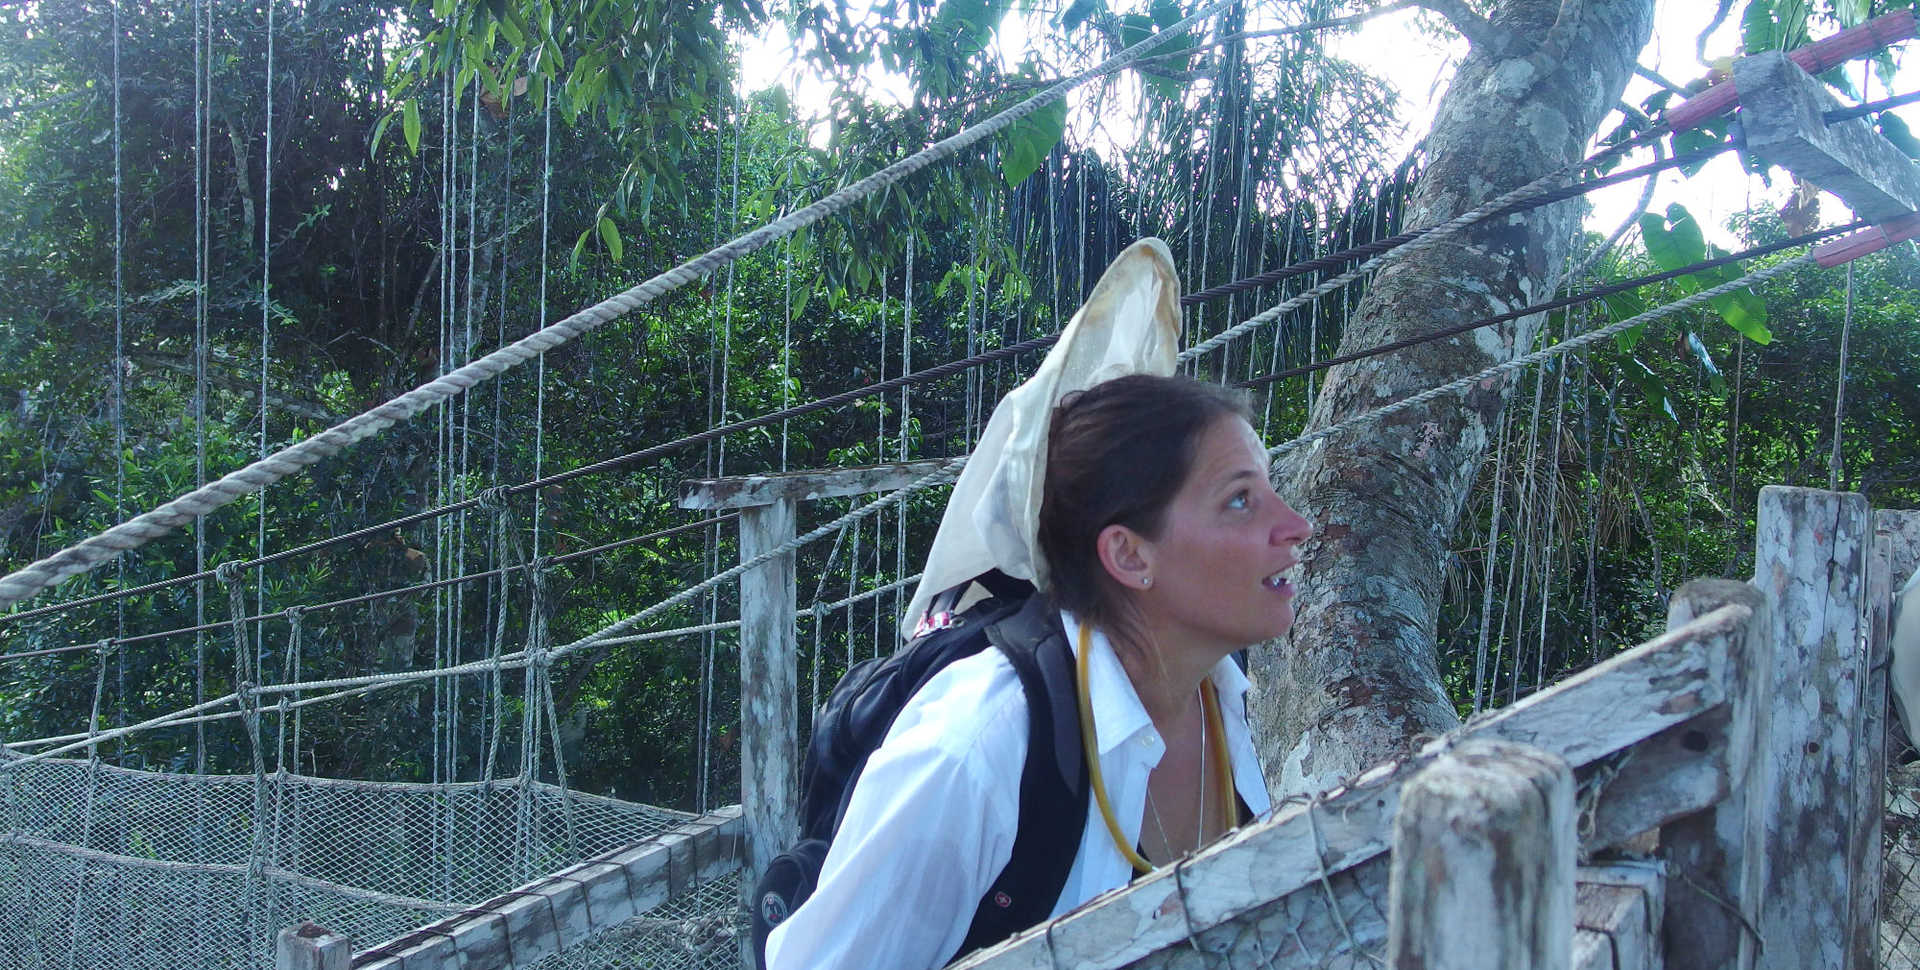 Entomology curator Michelle Troutwein hunts flies in canopy of the Peruvian Amazon.